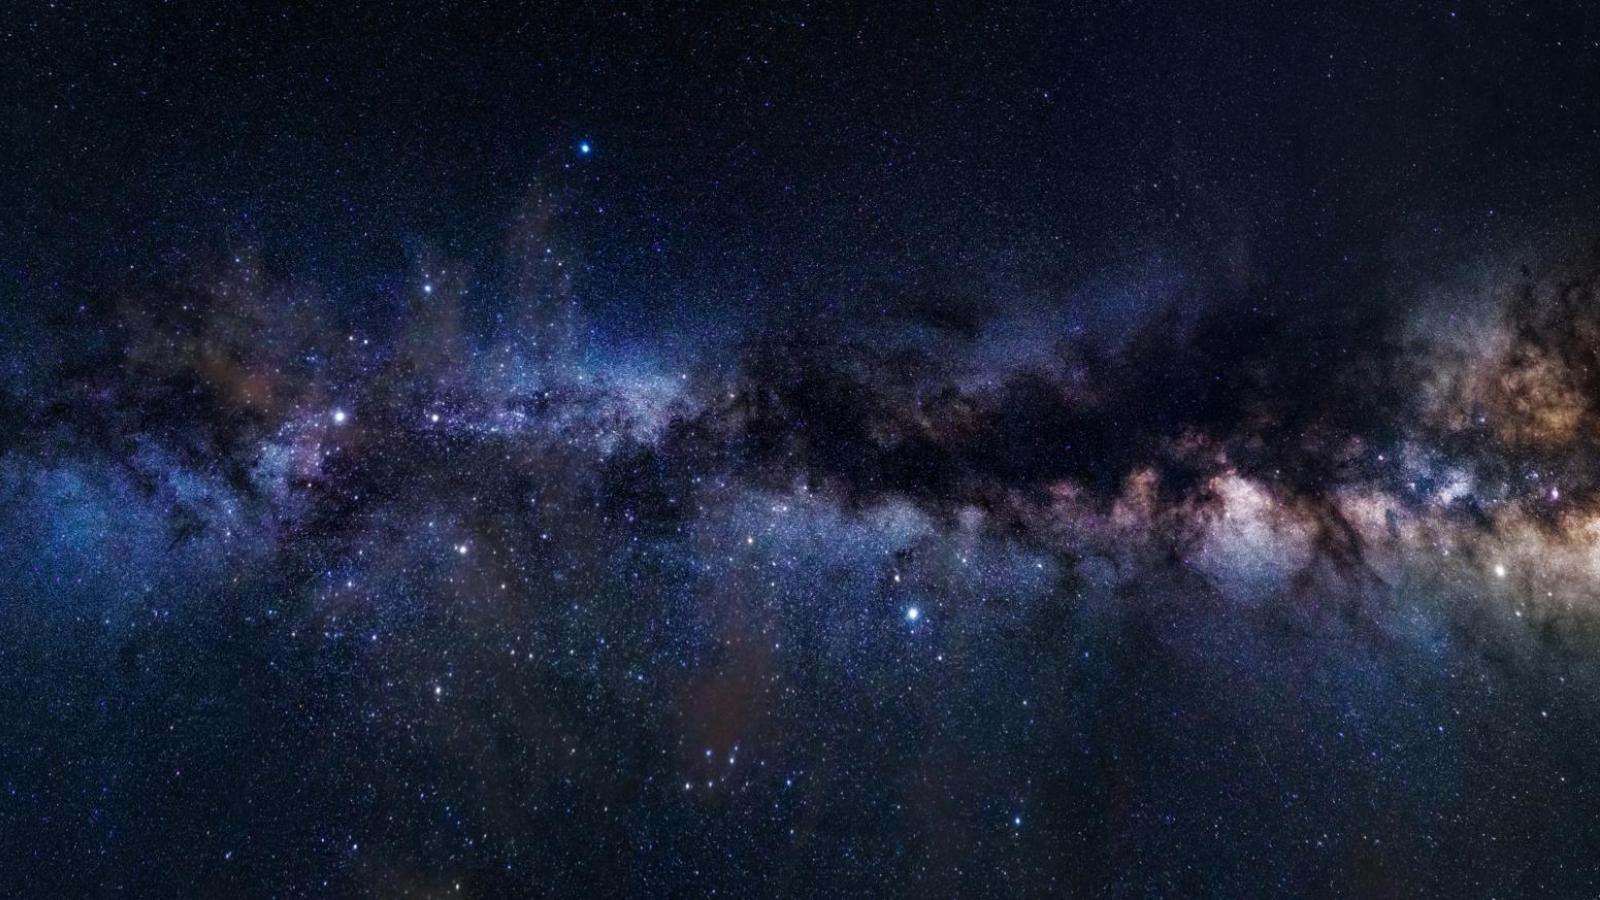 The galaxy as seen from Earth